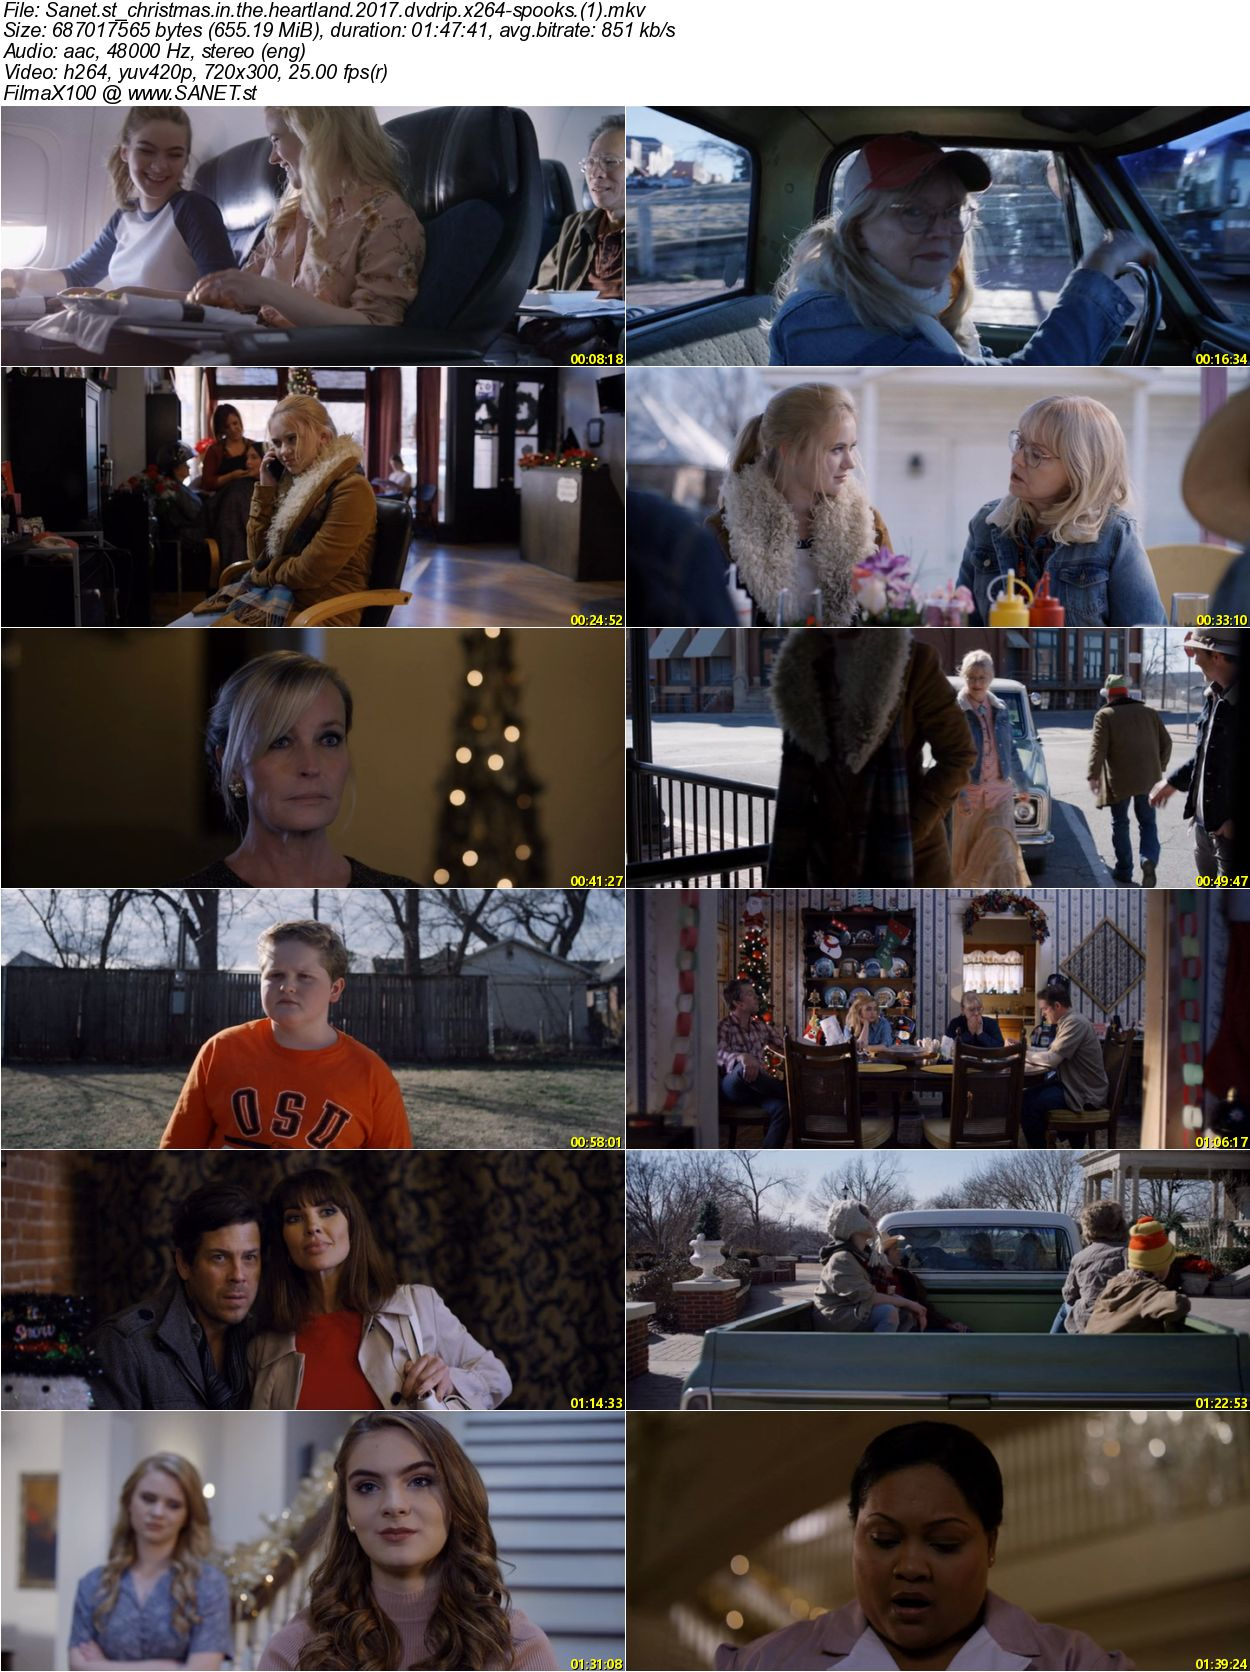 Christmas In The Heartland.Download Christmas In The Heartland 2017 Dvdrip X264 Spooks